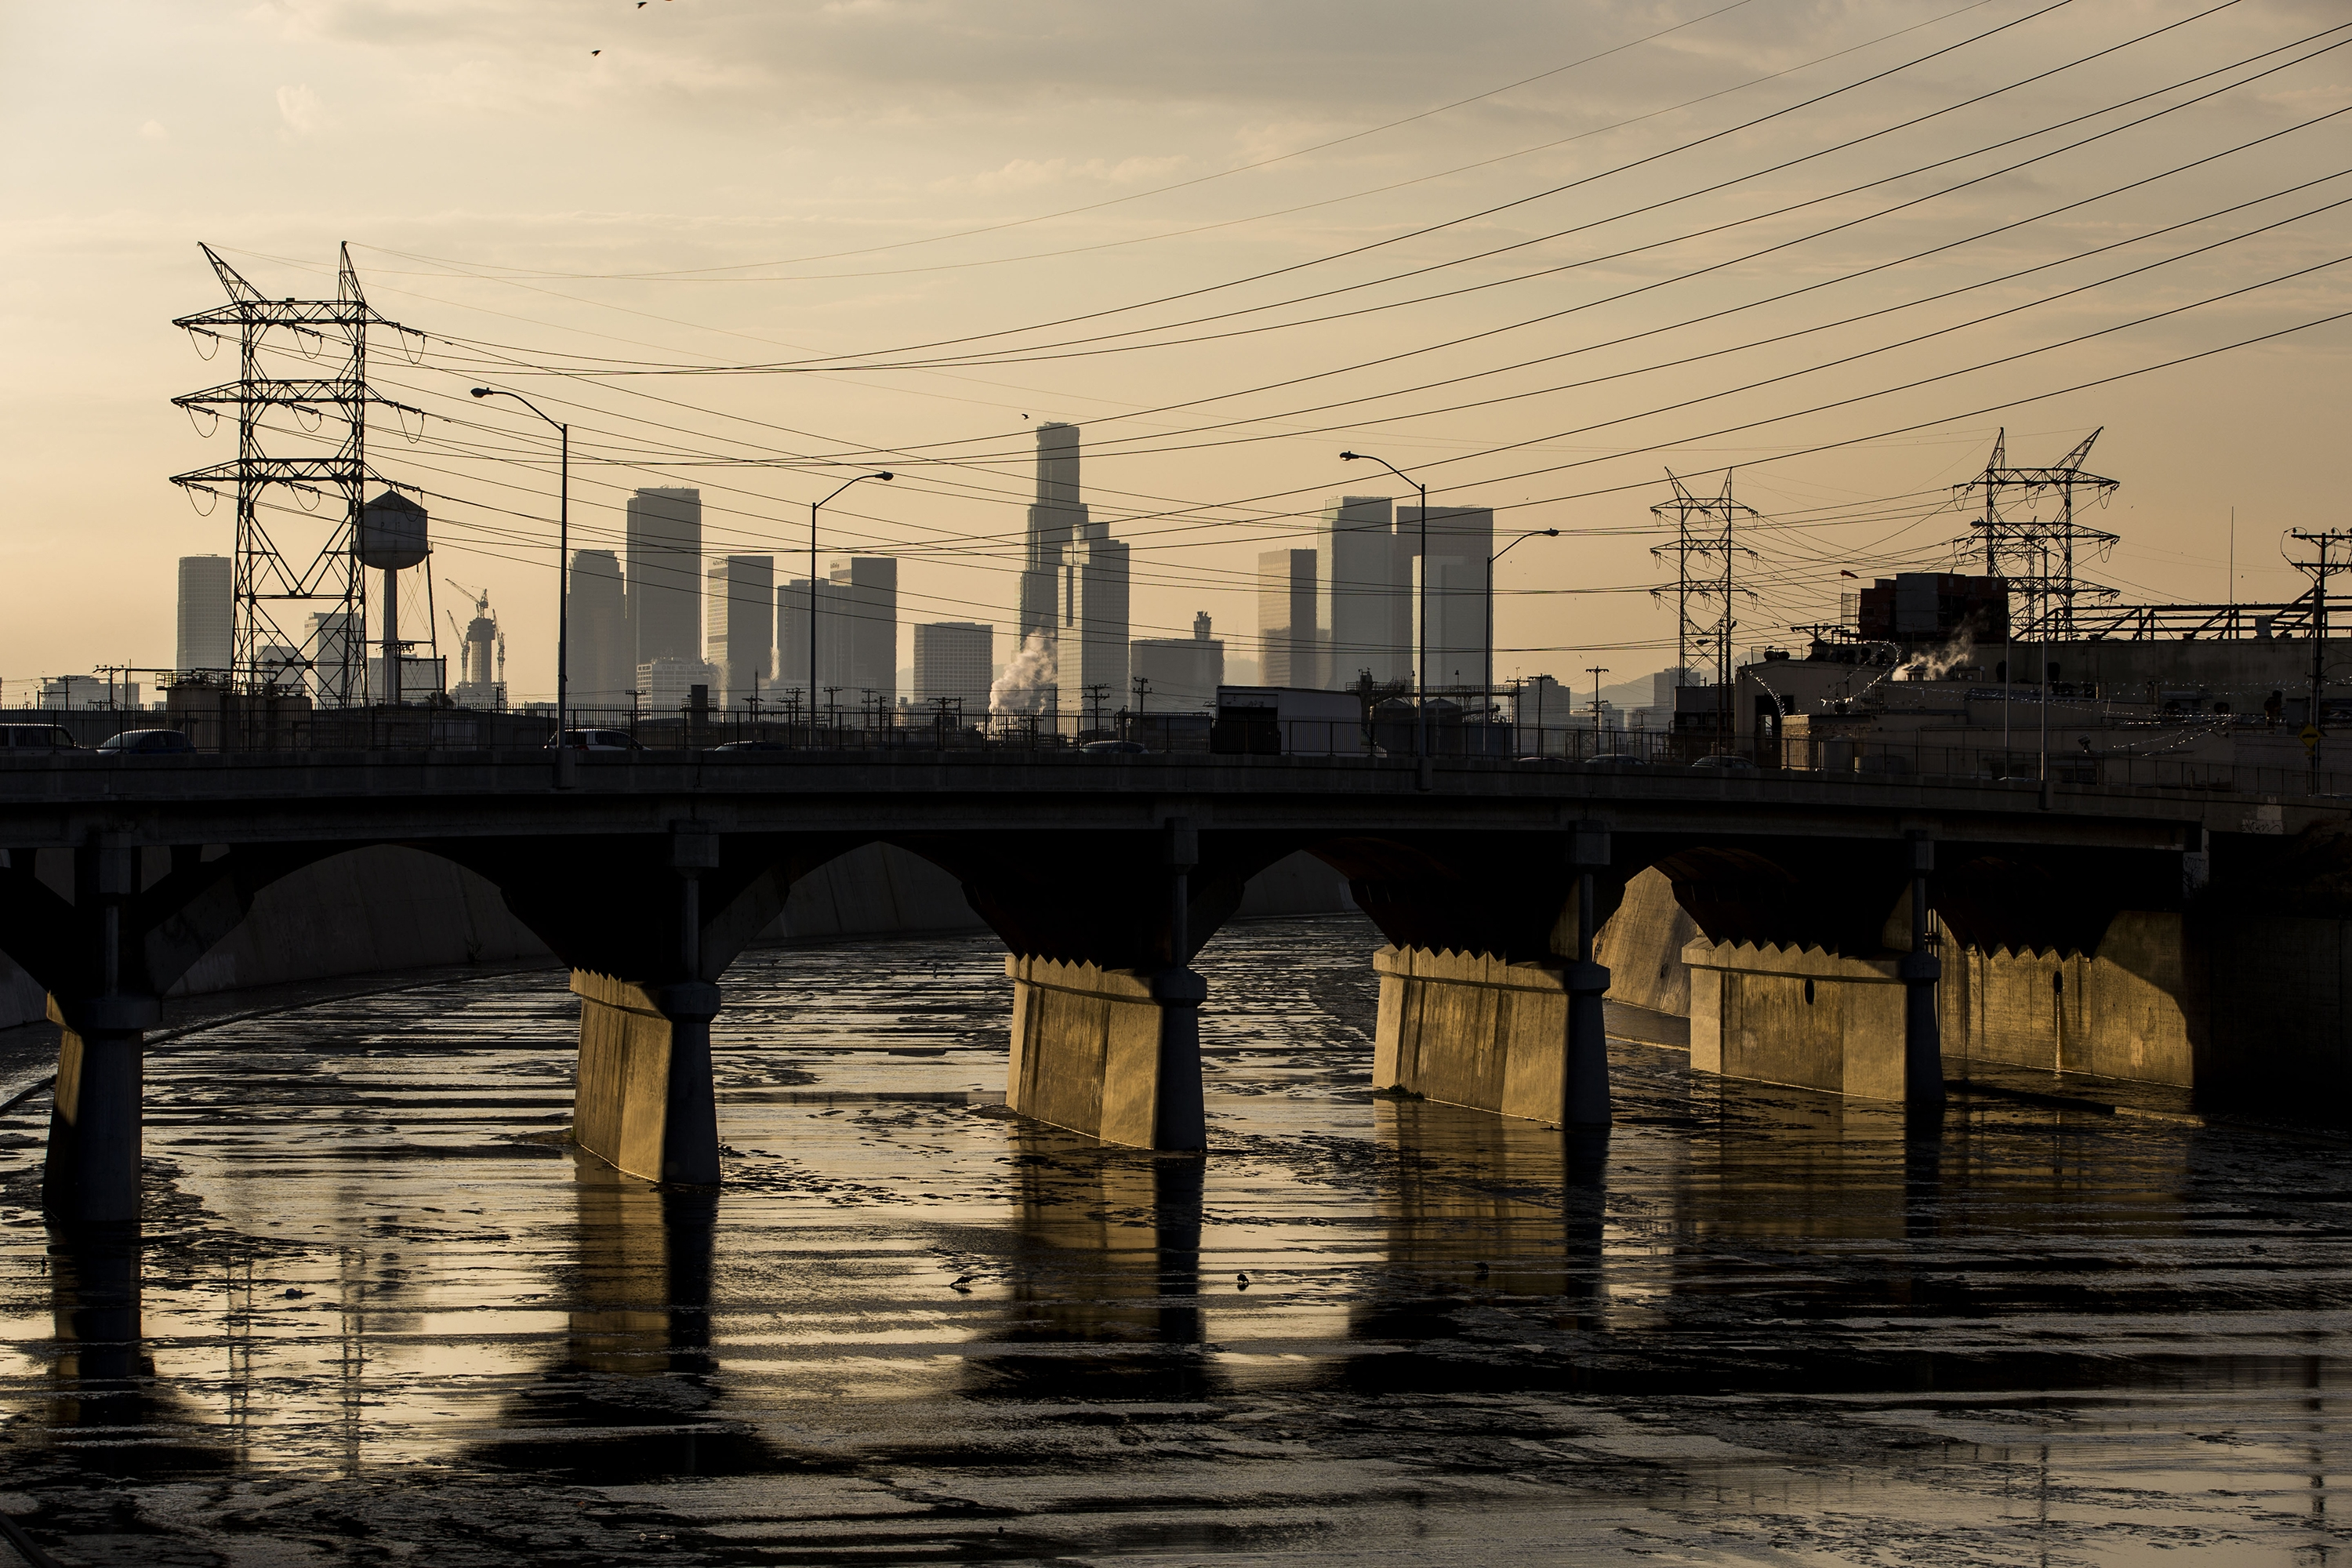 """In """"True Detective,"""" the fictional Vinci seems a lot like the real city of Vernon, Calif., at its nadir. The two show striking similiarities; the second season was even filmed in Vernon itself."""